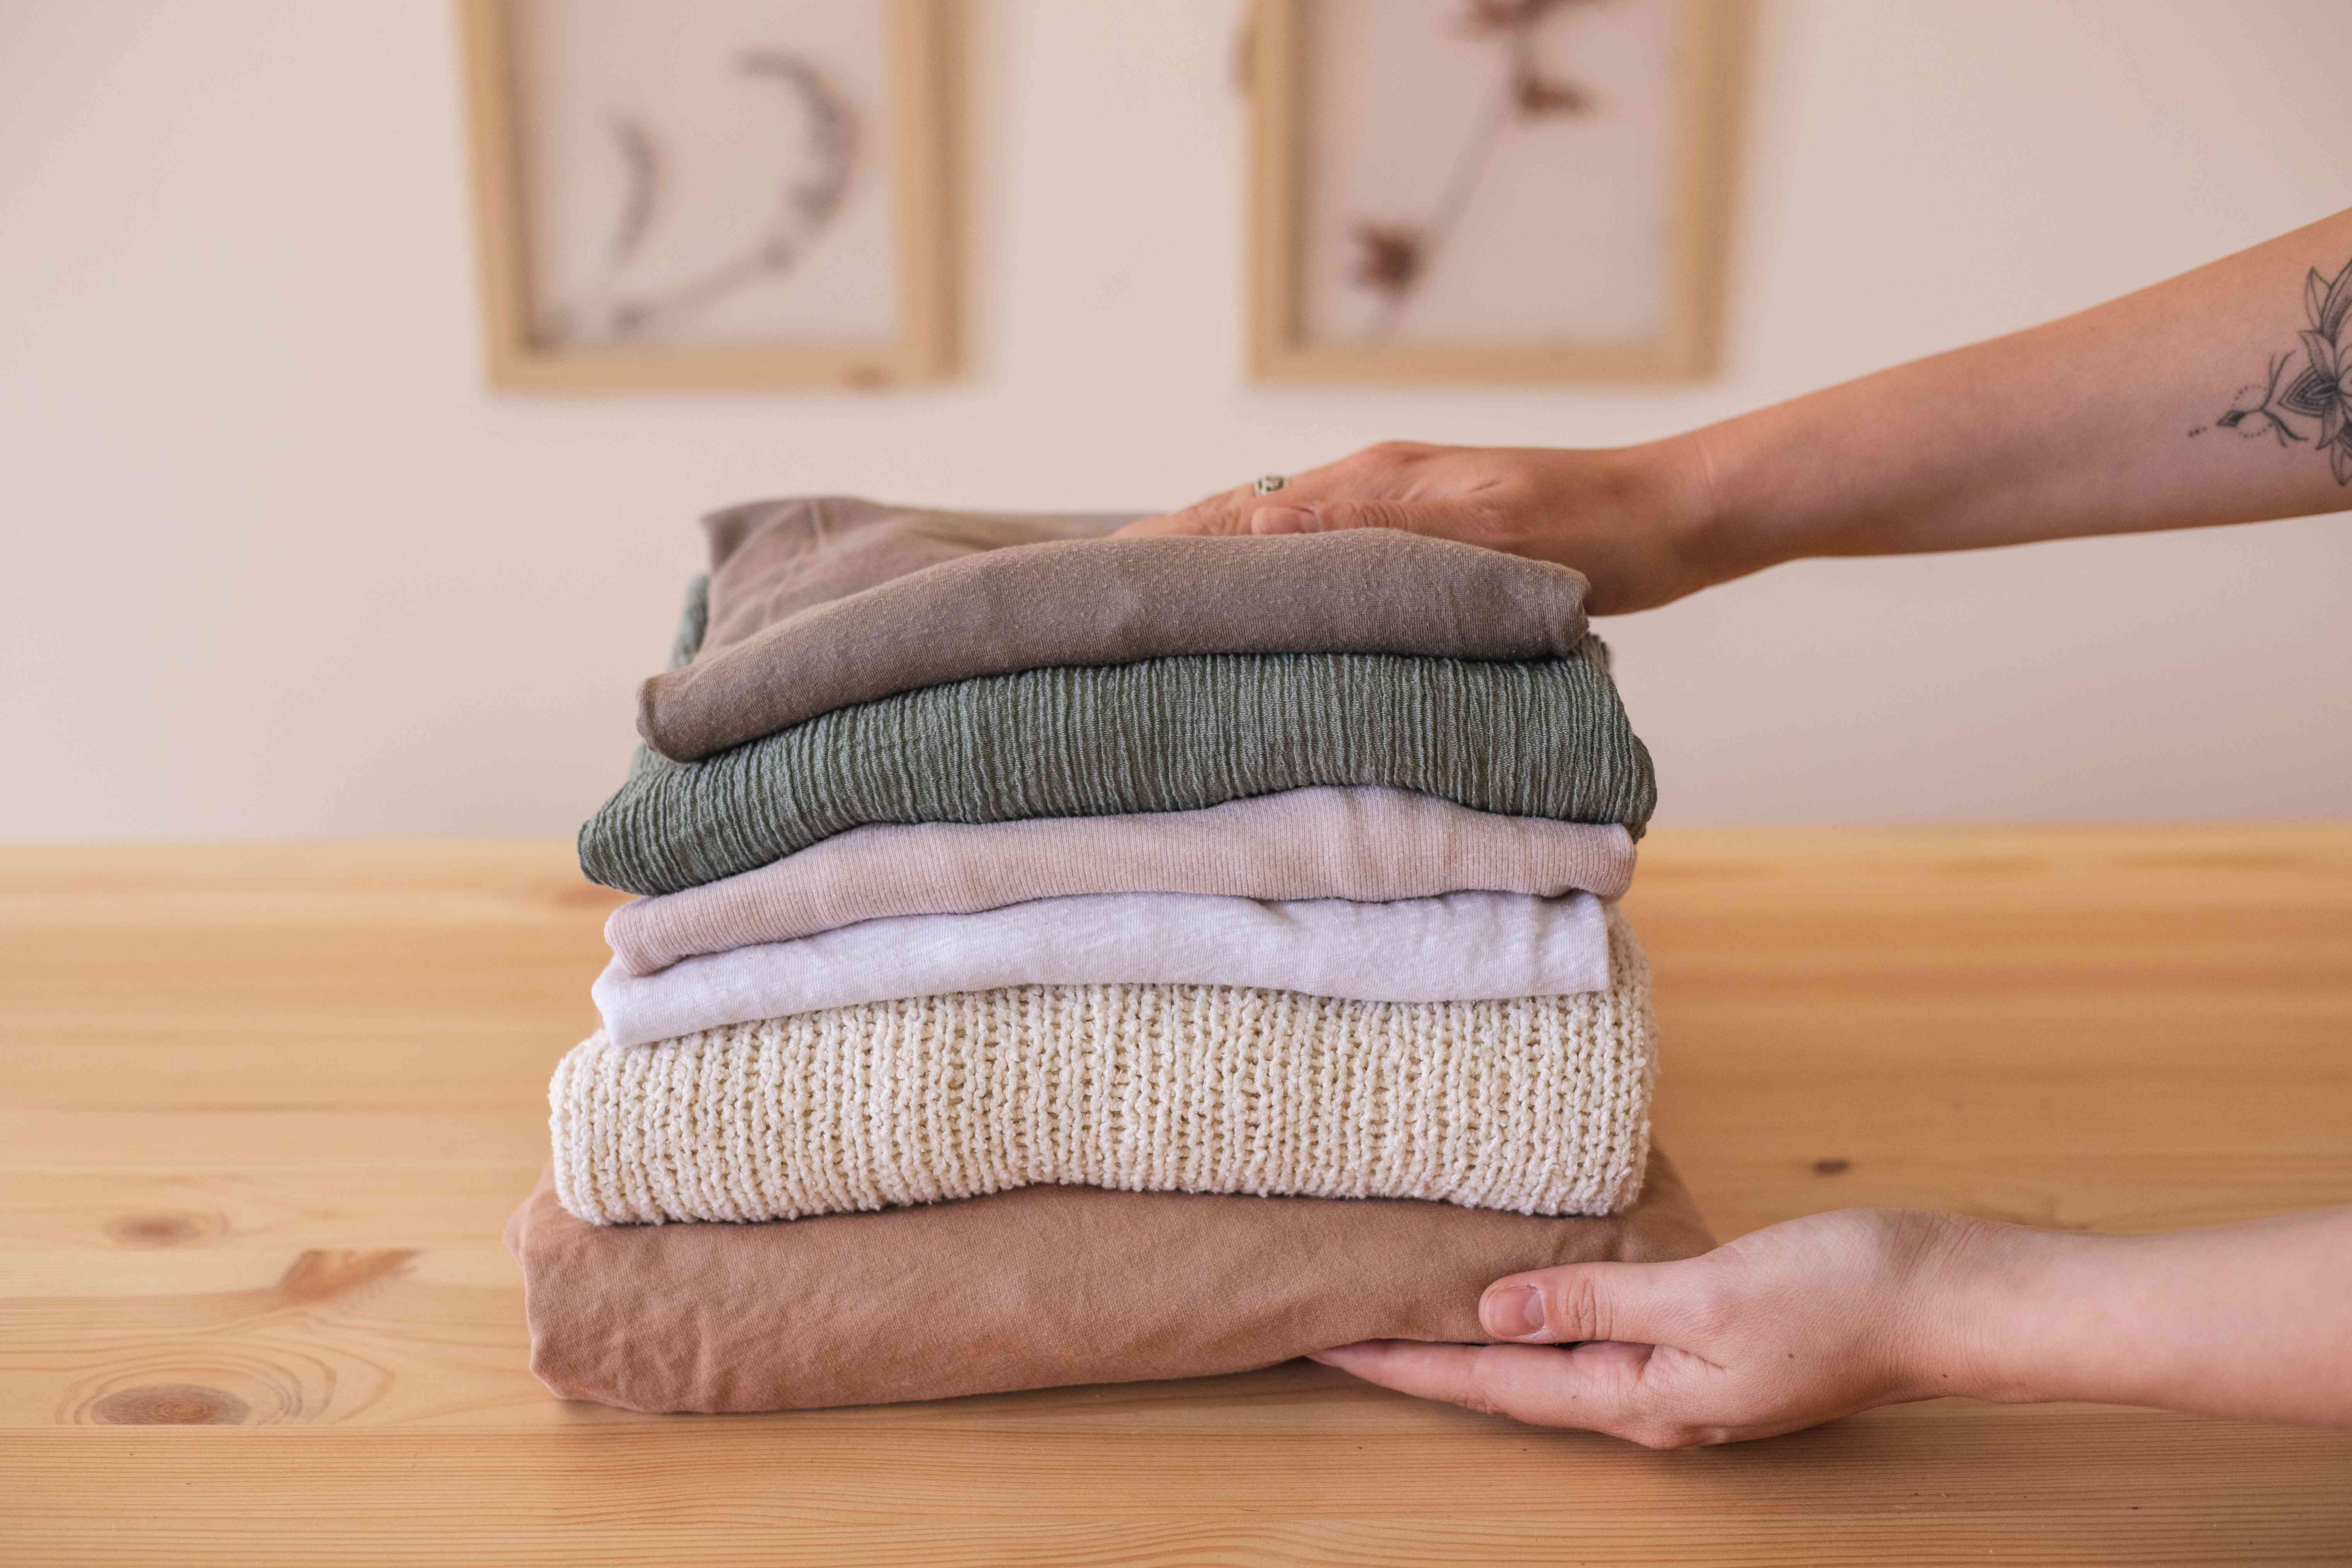 hands reach for neatly folded clothing items on wooden dining table